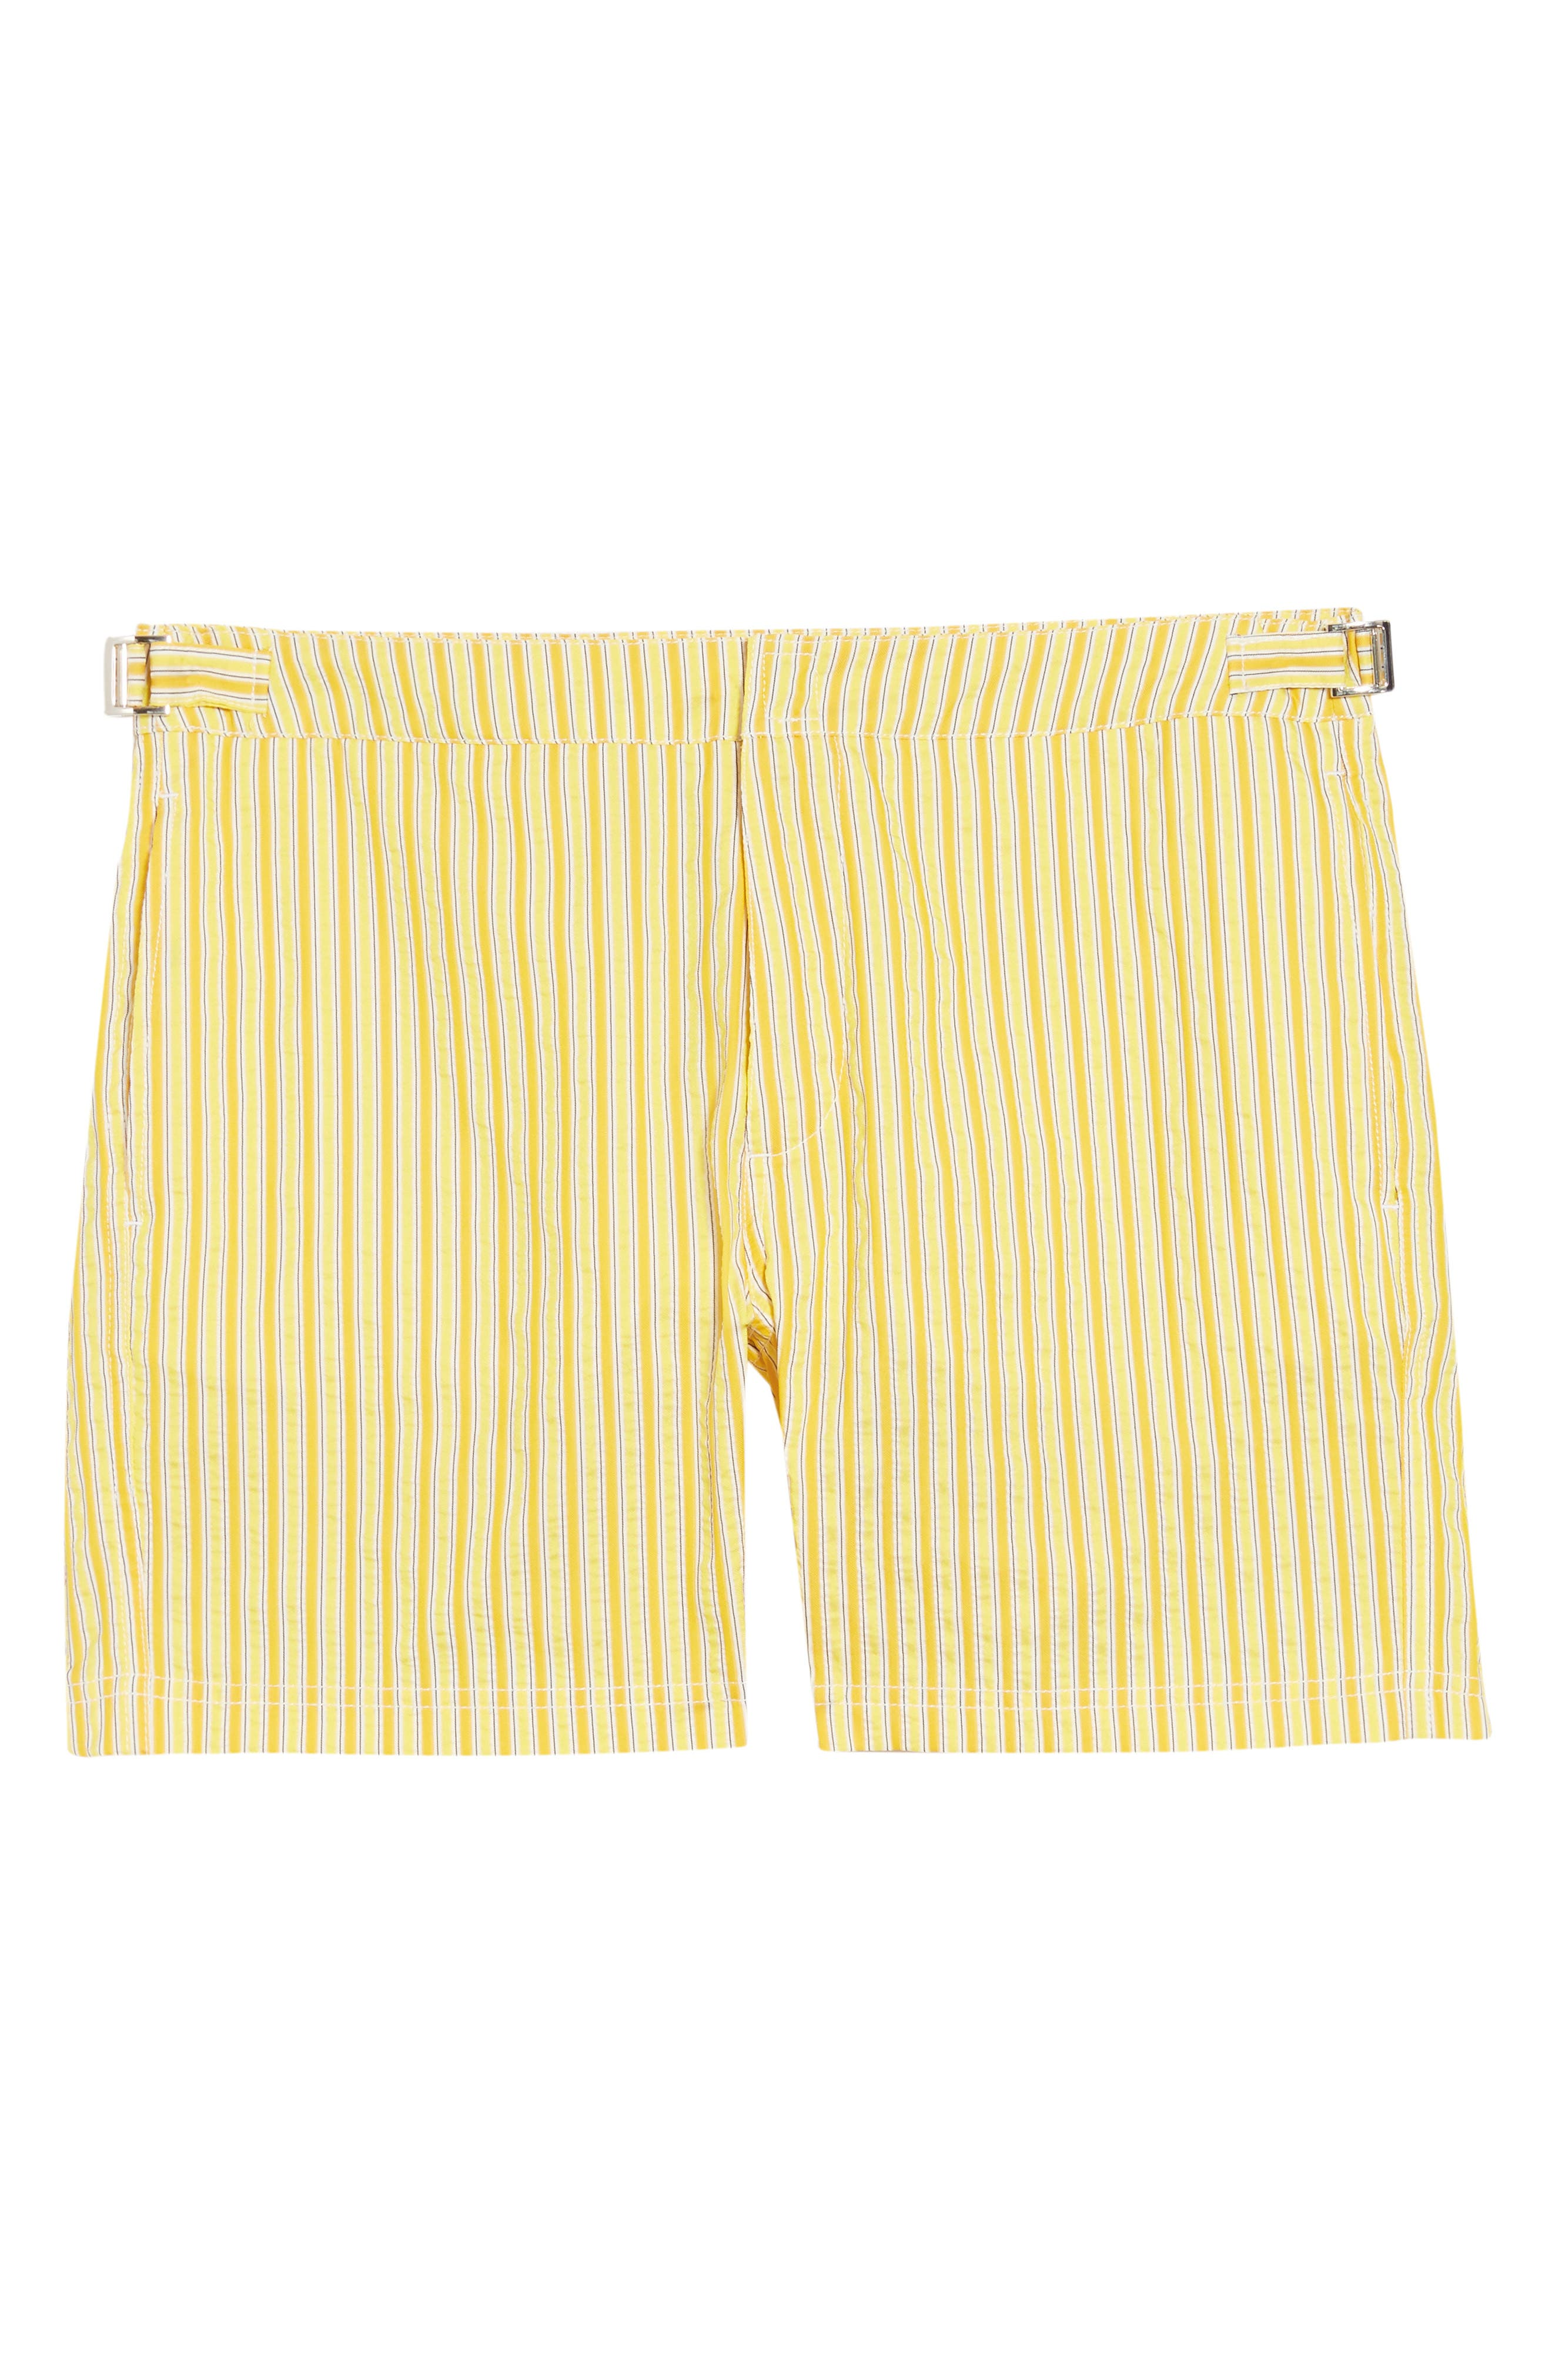 Variegated stripes make a splash on lightweight board shorts cut from quick-drying material that keeps you comfortable in and out of the waves. Style Name: Bugatchi Stripe Board Shorts. Style Number: 6039793 1. Available in stores.